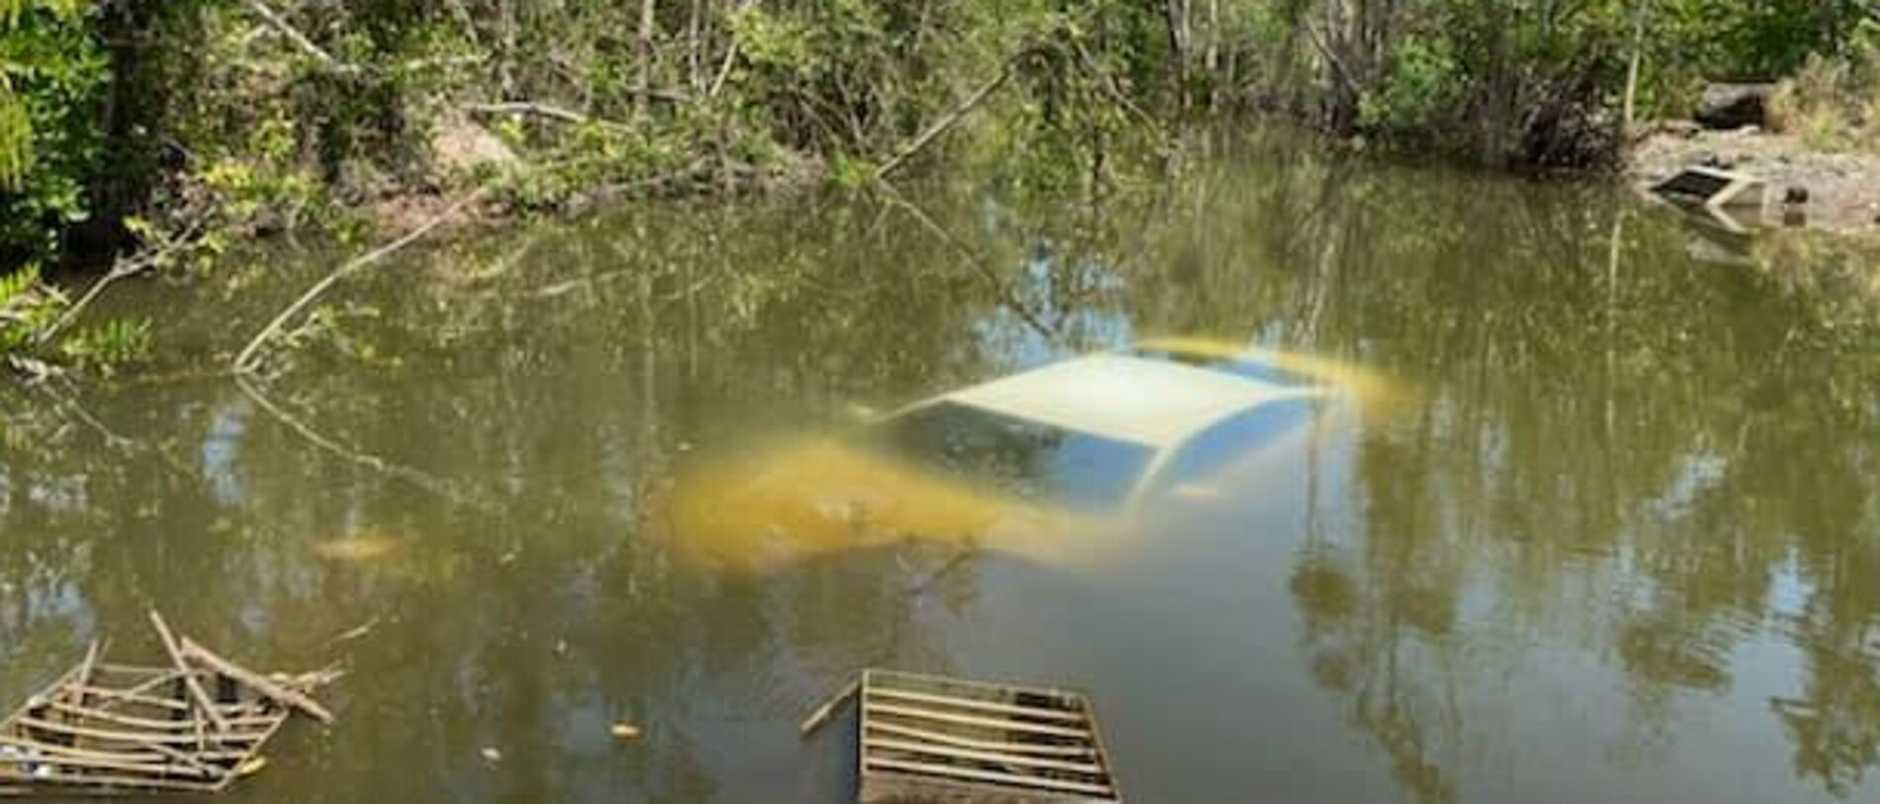 A car has crashed off a bridge and sunk to the bottom of a crocodile-prone waterway.